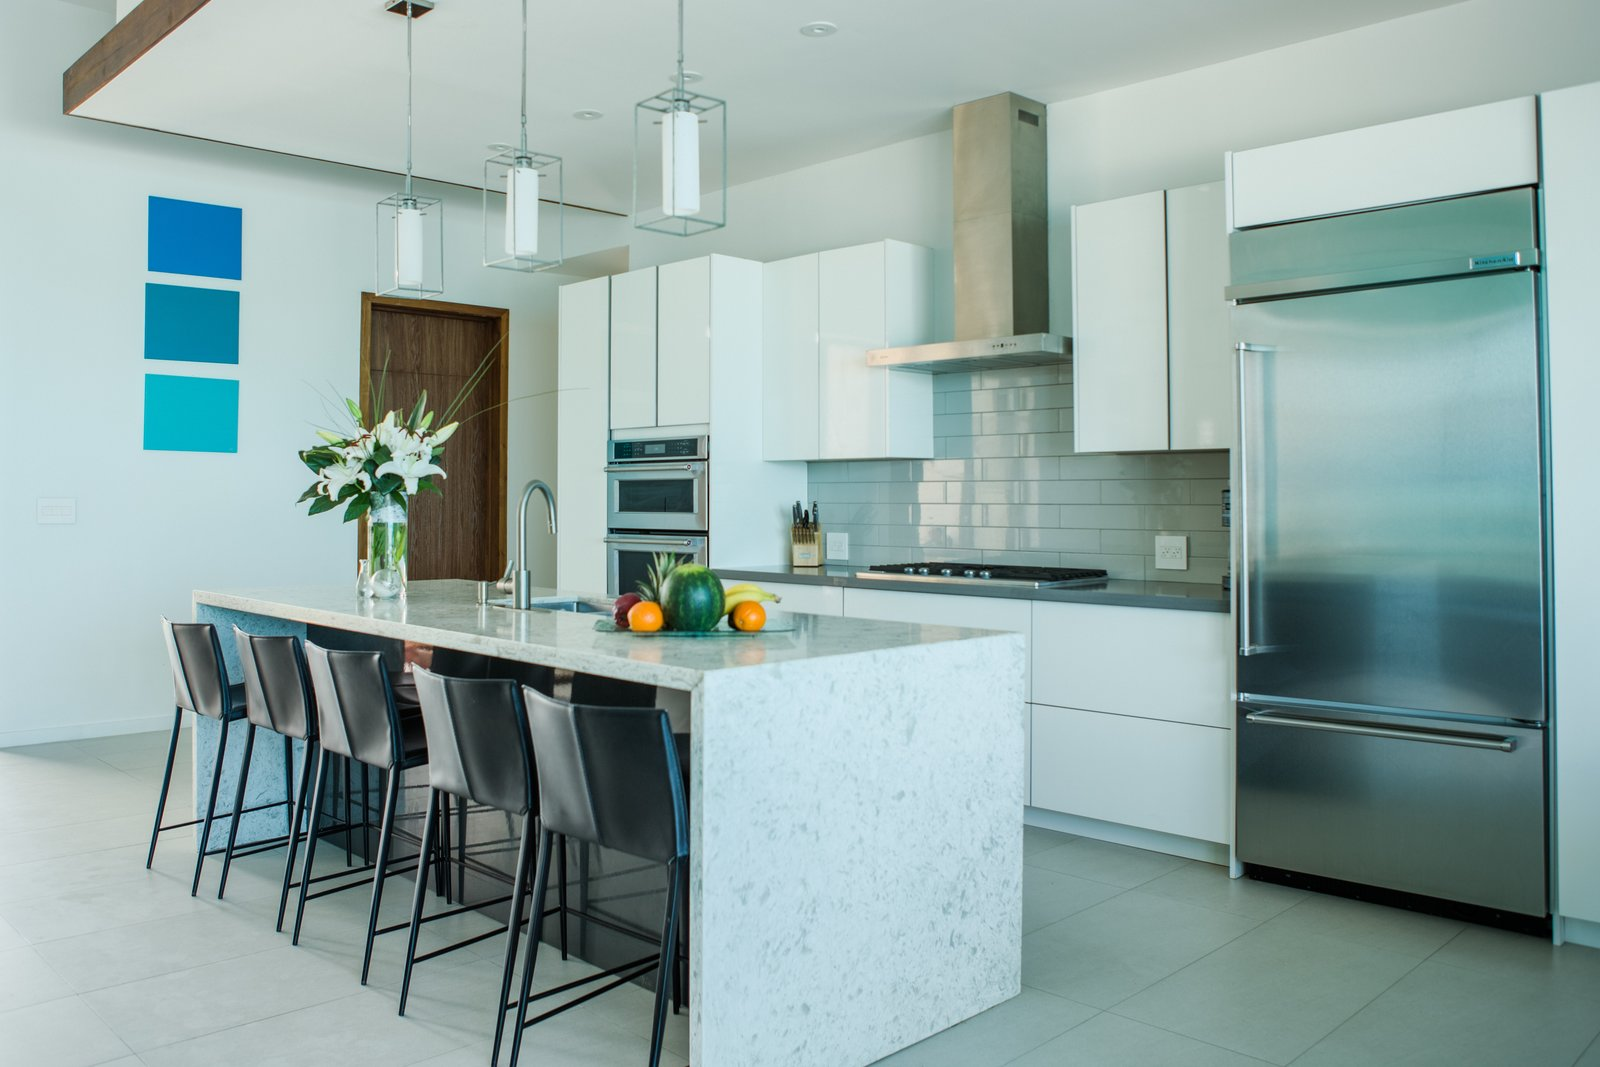 Tagged: Kitchen, White Cabinet, Subway Tile Backsplashe, Porcelain Tile Floor, Pendant Lighting, Refrigerator, Cooktops, Marble Counter, and Drop In Sink.  Tip of the Tail Villa by Zillow